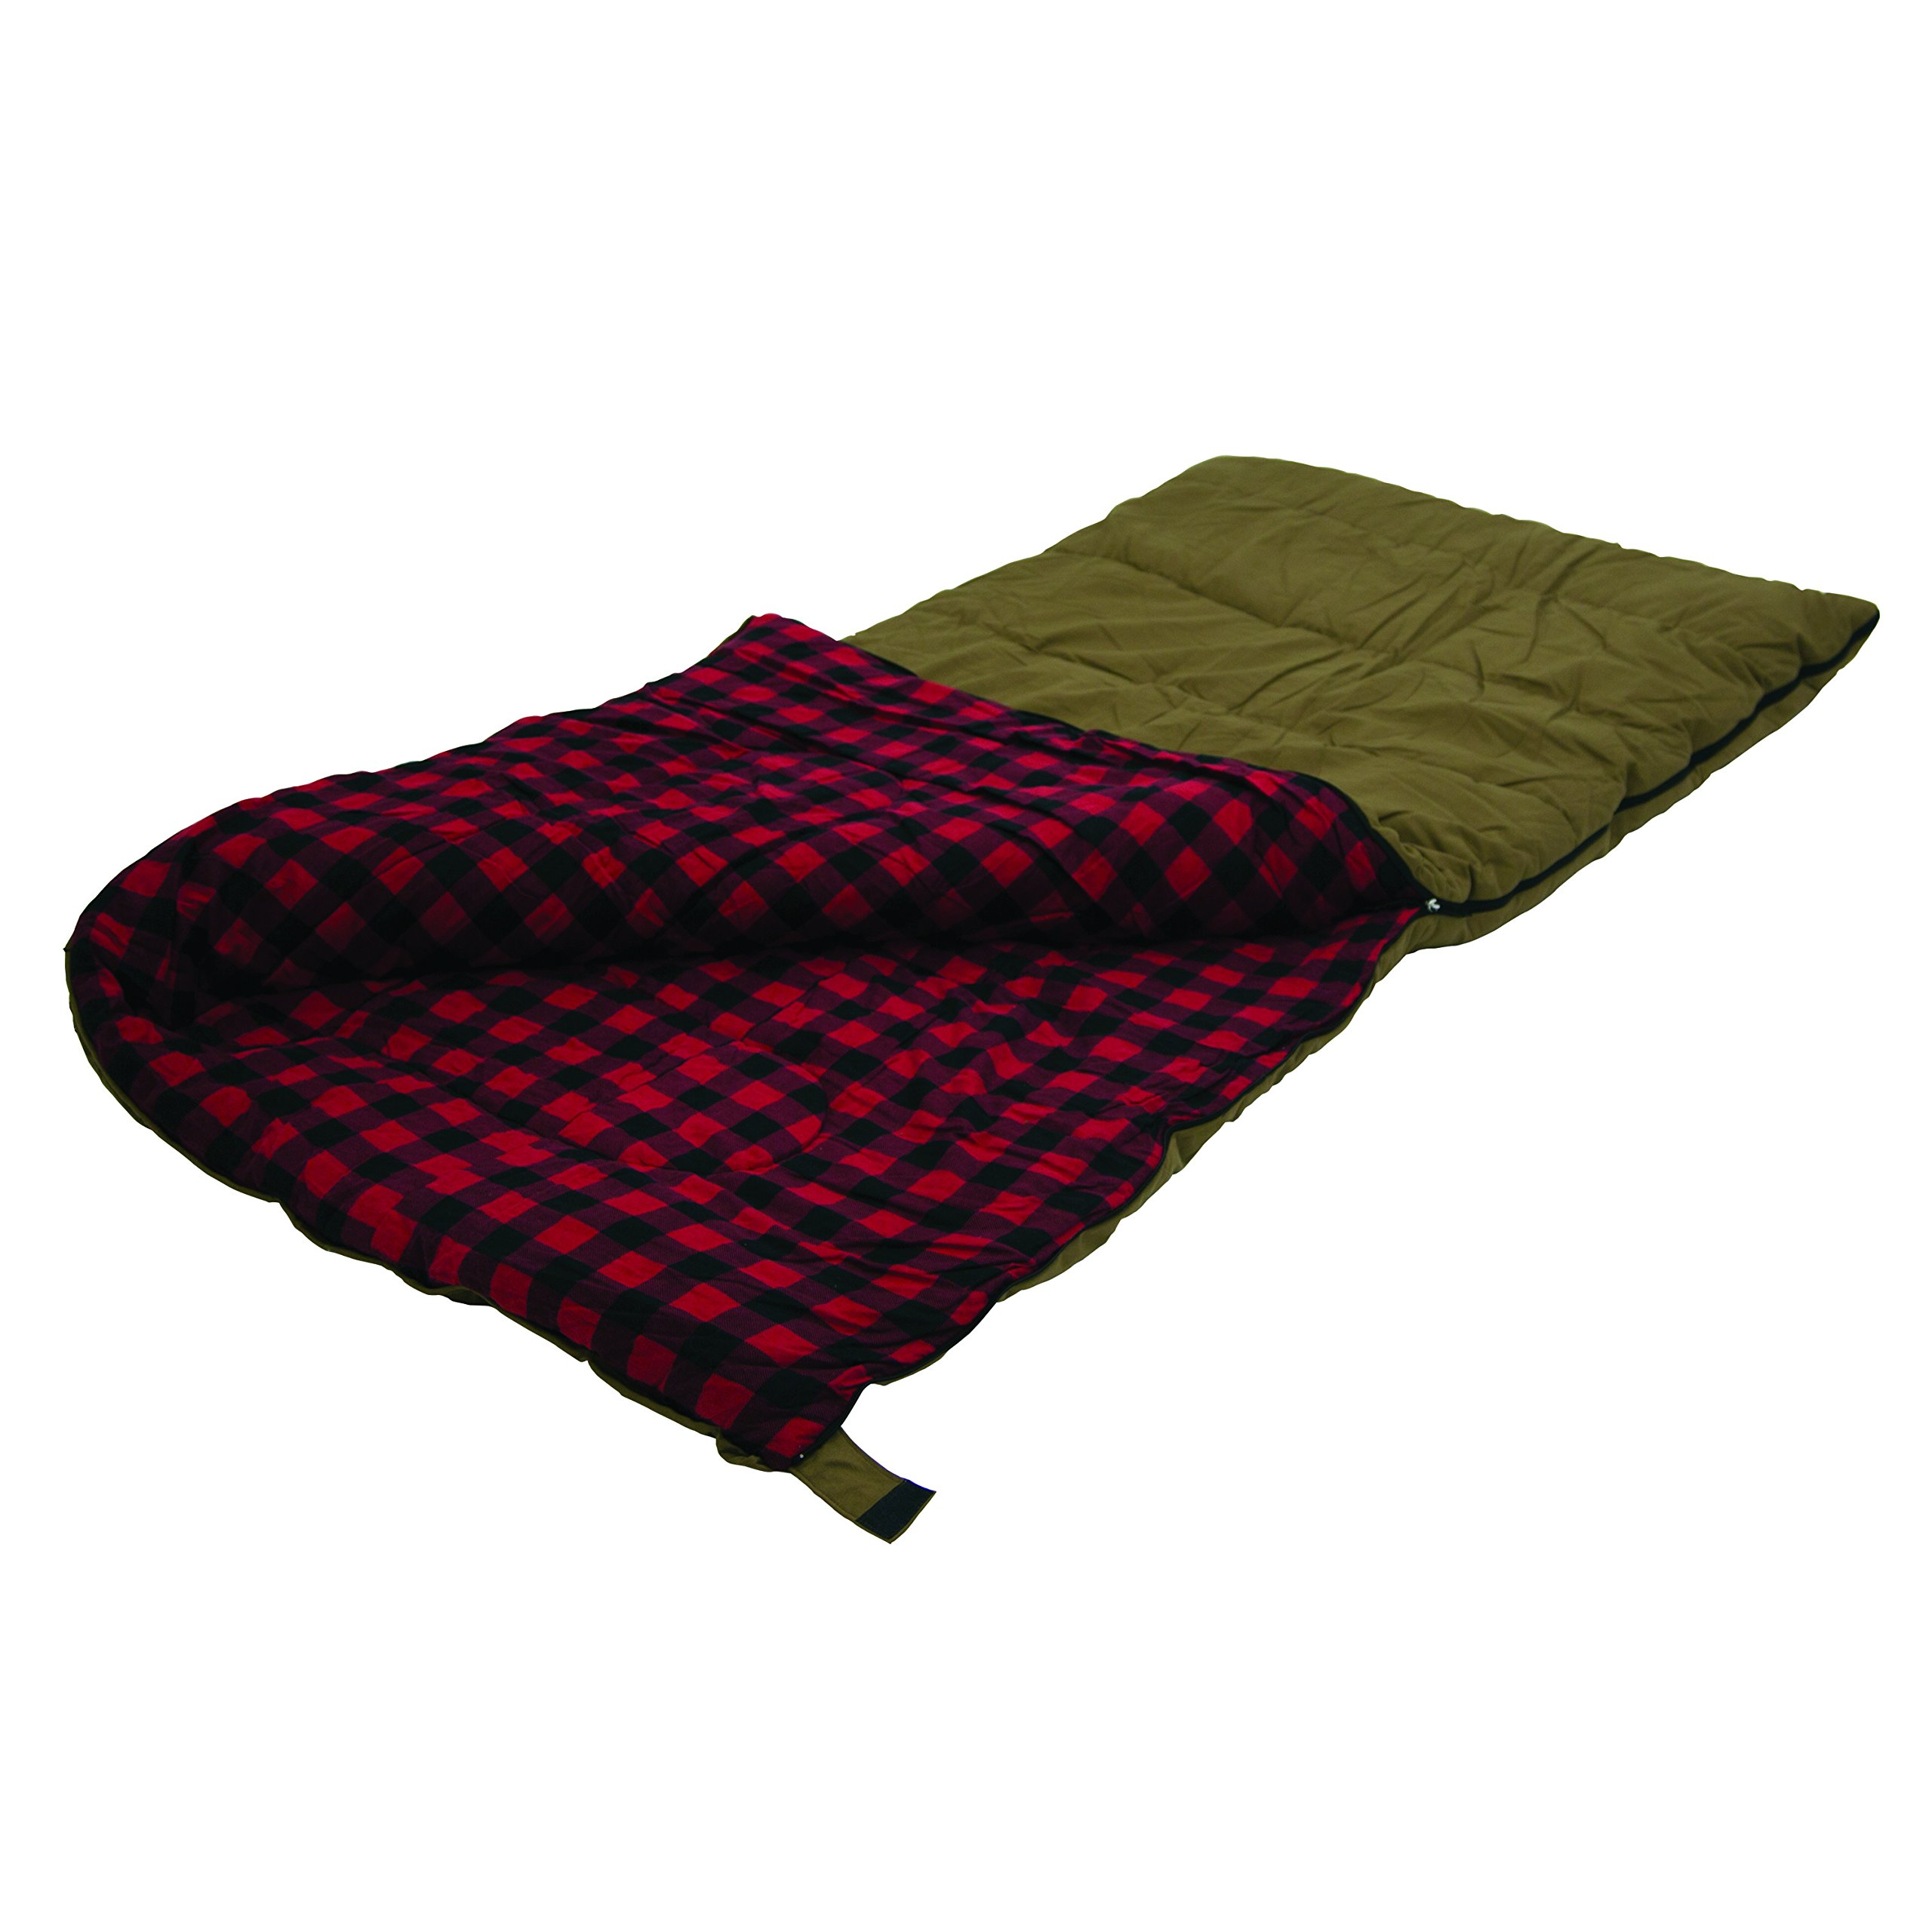 Stansport Kodiak 6 Lb. Canvas Sleeping Bag, 81'' x 39'' - Brown